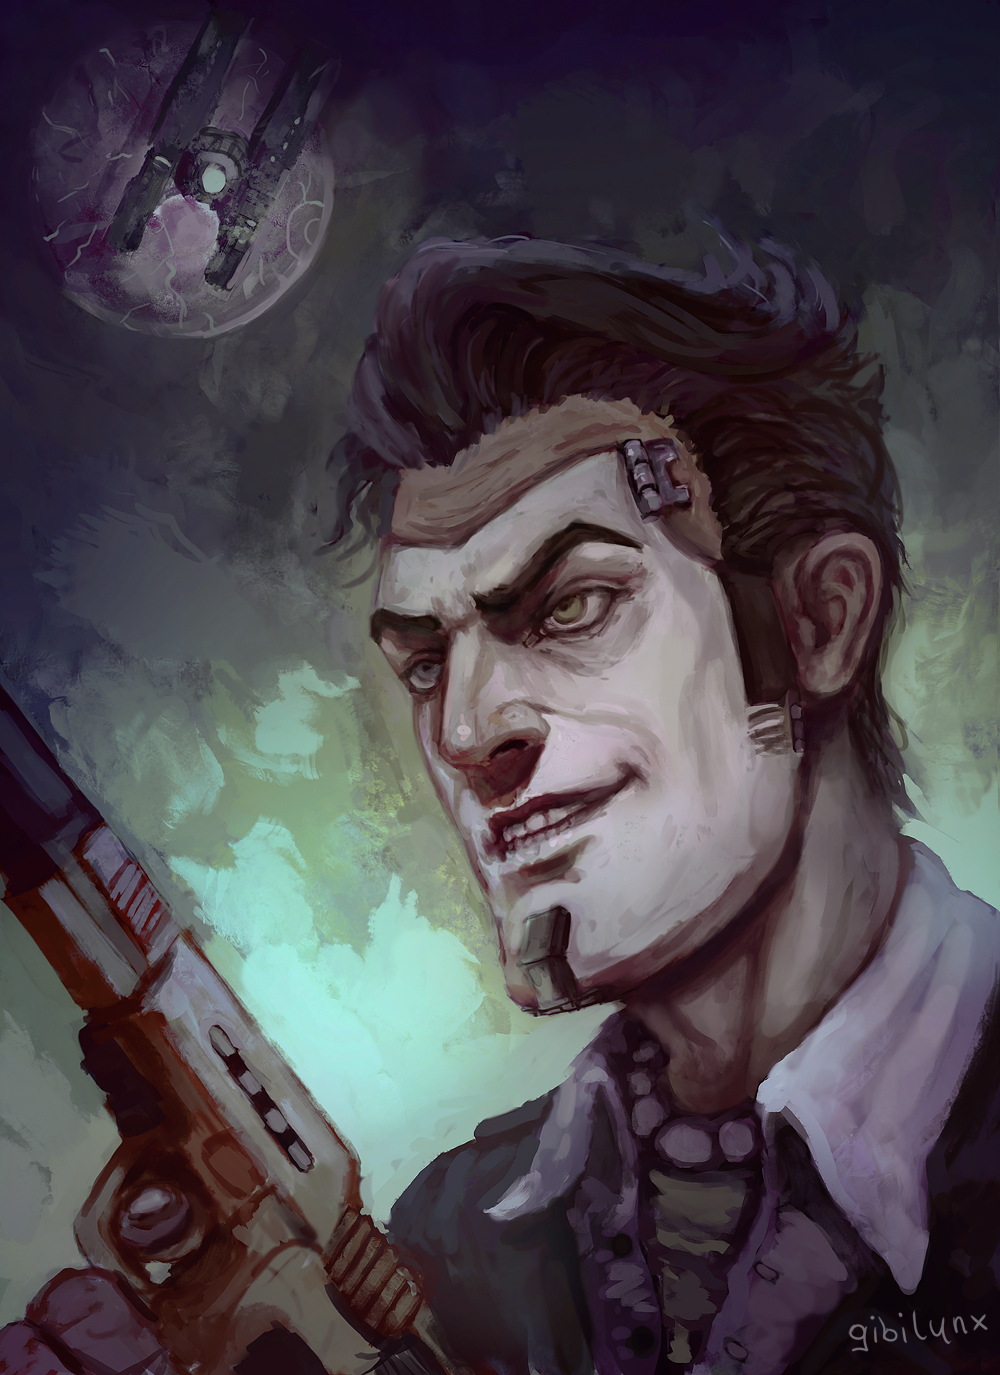 Handsome Jack By Gibilynx On Deviantart